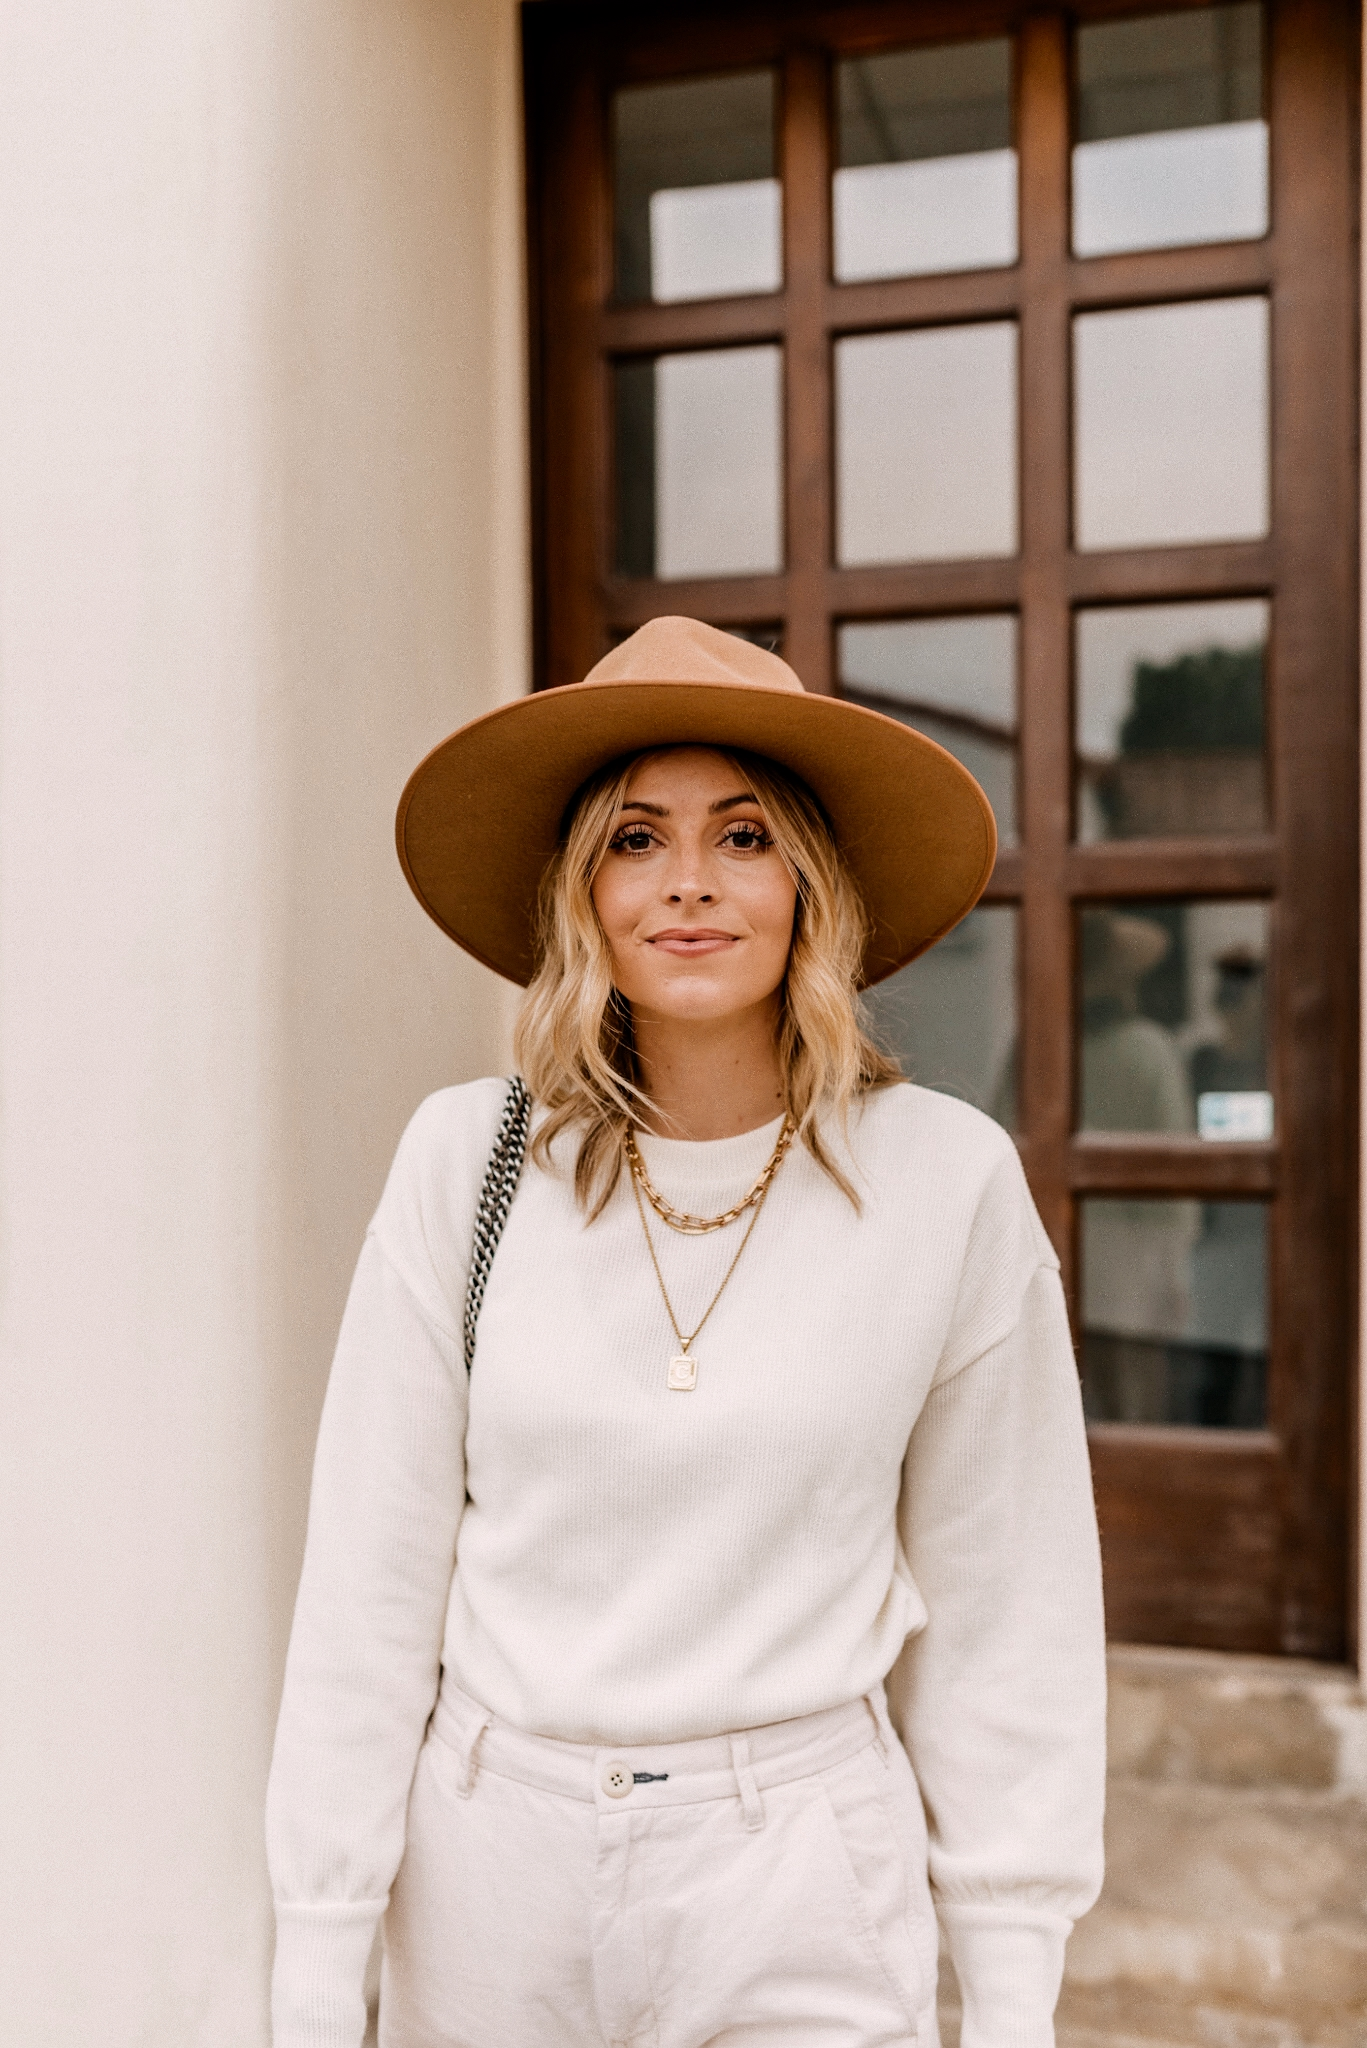 Fall fedora Hats | Fedora Hats by popular San Diego fashion blog, Navy Grace: image of a woman wearing a Madewell Brushed Knit Puff-Sleeve Top, Everlane The Arc Canvas Pant,Gucci Women's Jordaan GG Canvas Loafers and Free People Rancher Felt Hat.